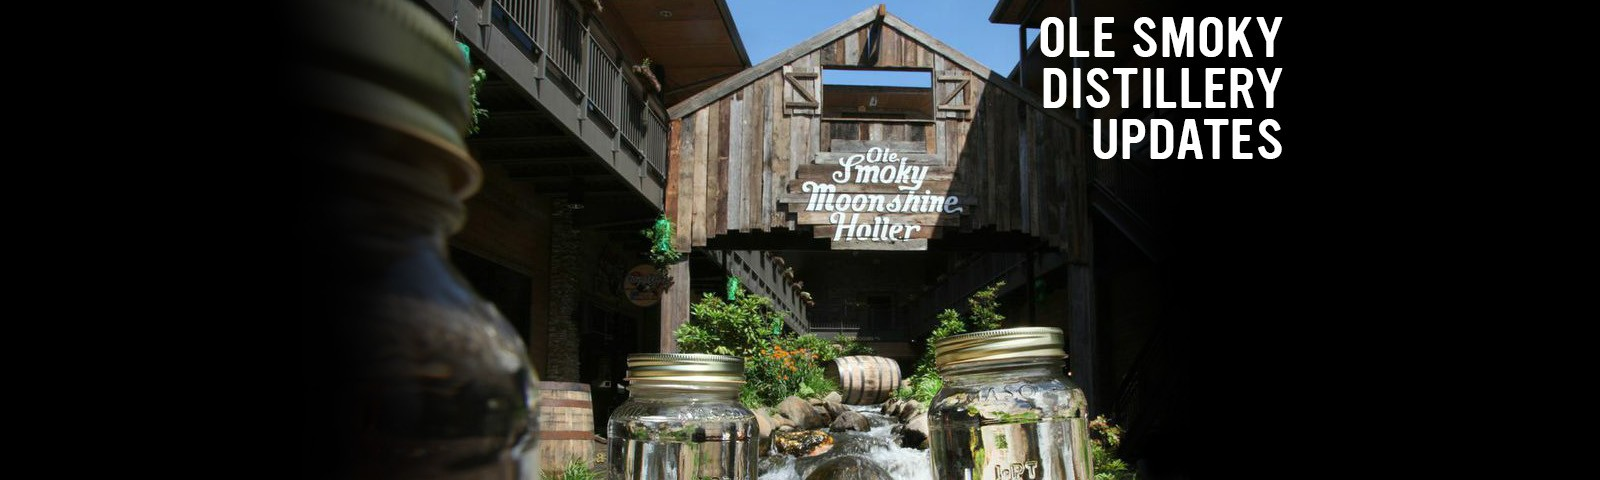 Ole Smoky Distillery Wildfire Updates